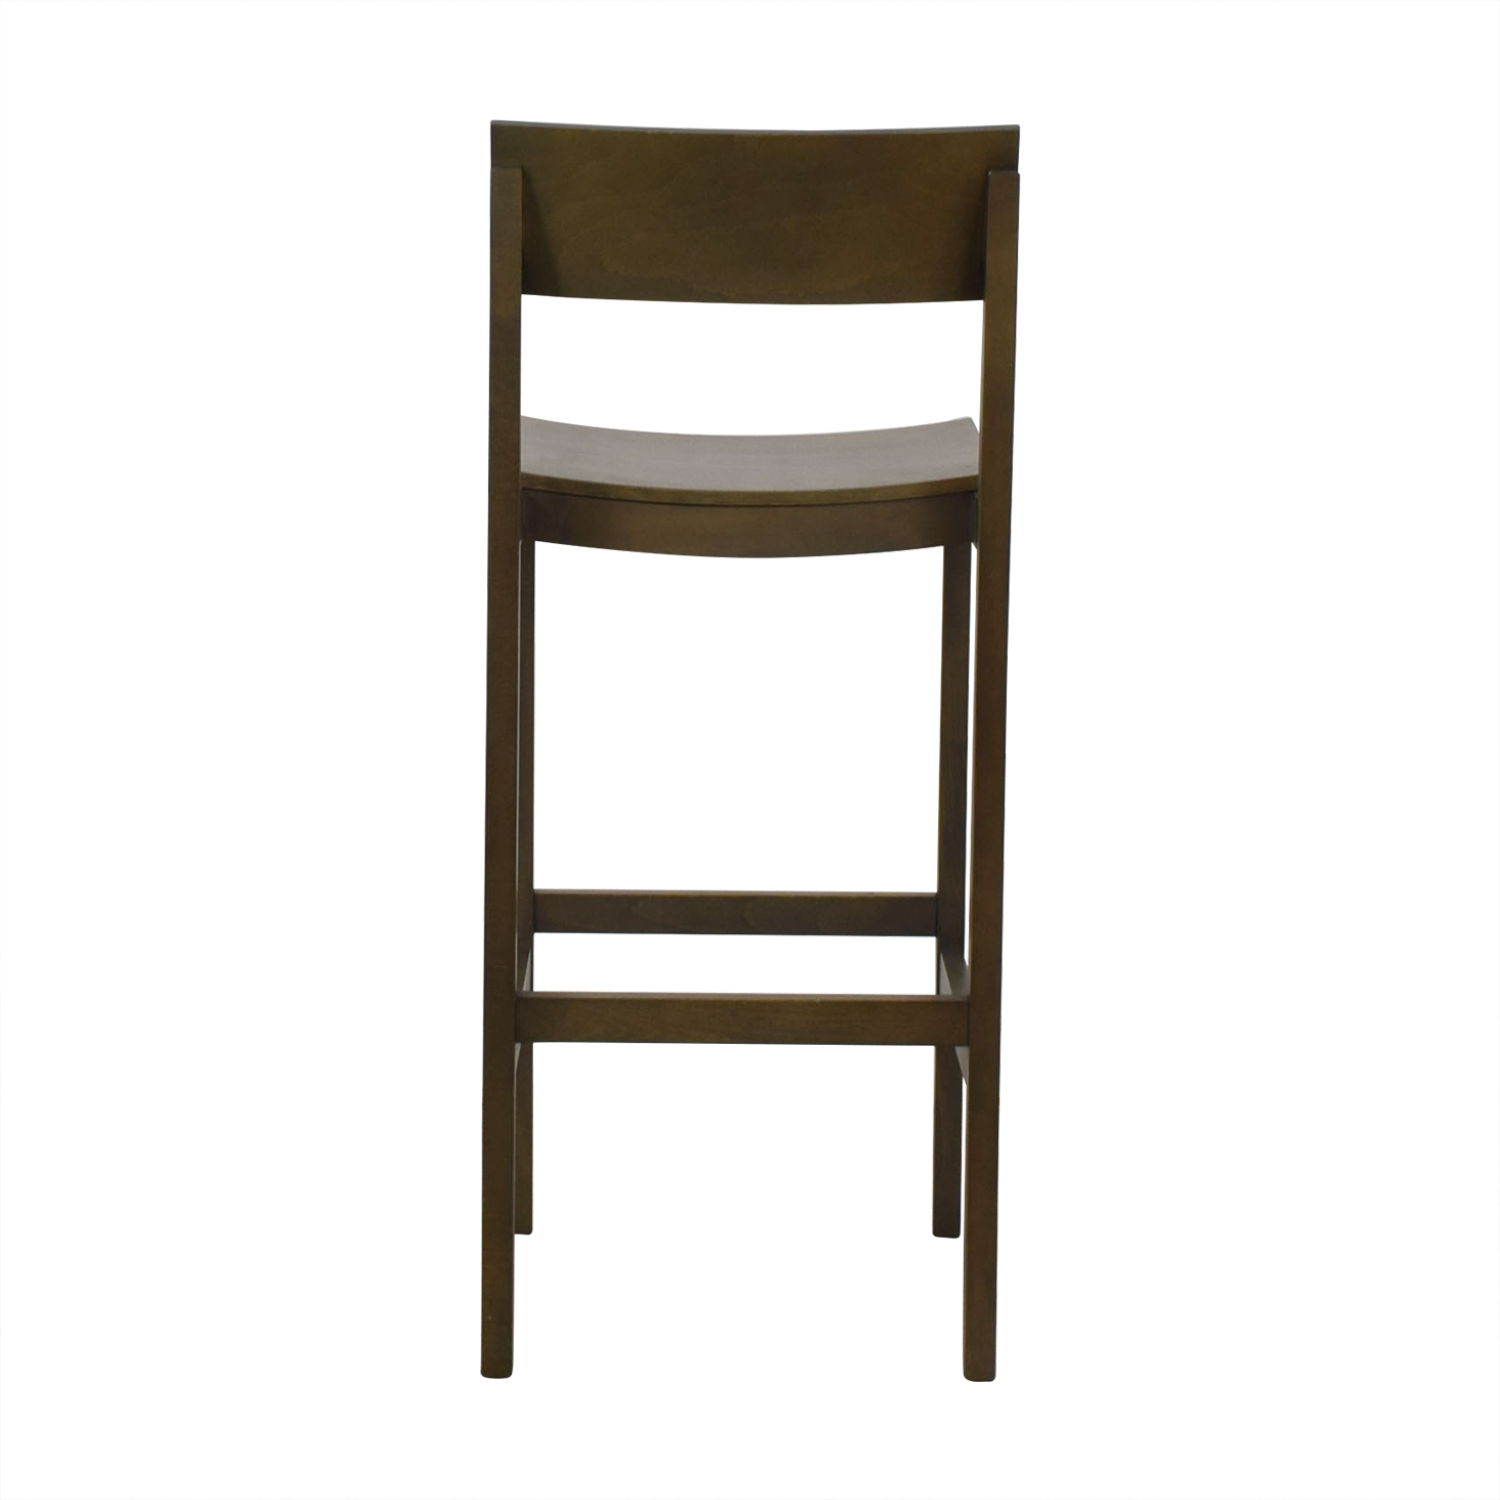 CB2 CB2 Counter Stool for sale